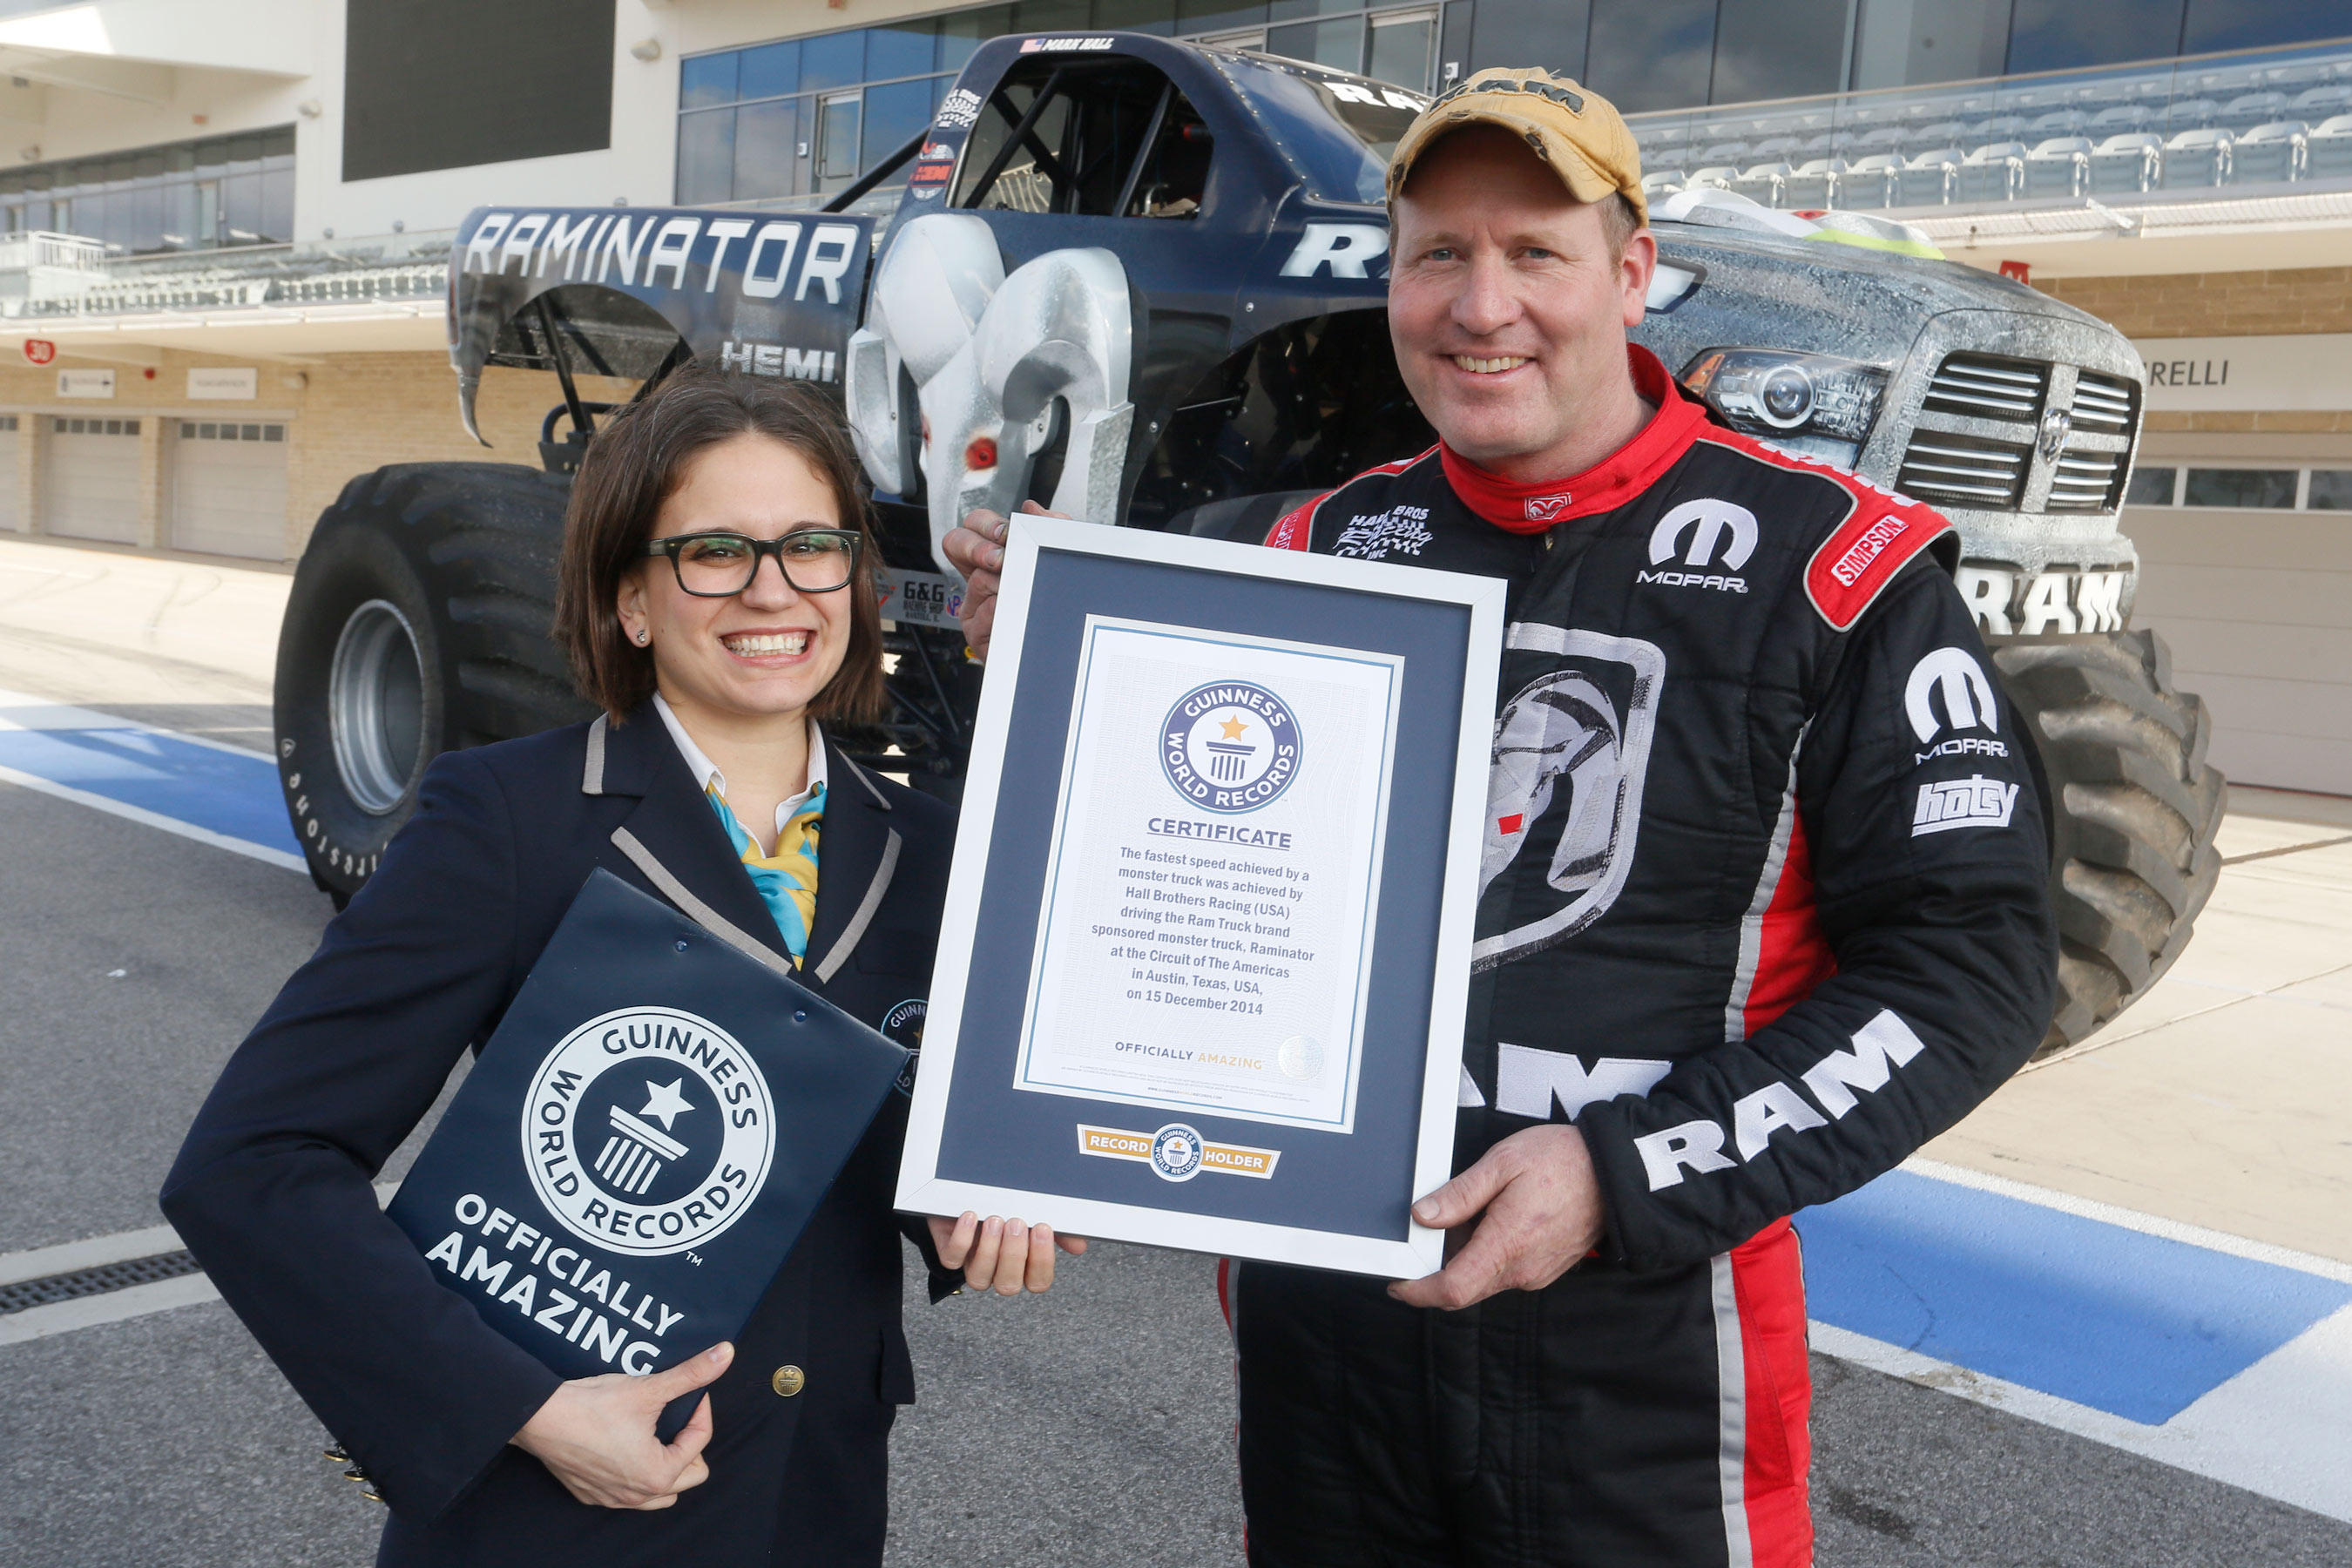 Guinness world records title holder for fastest speed for a monster truck raminator with driver mark hall and guinness representative johanna maria